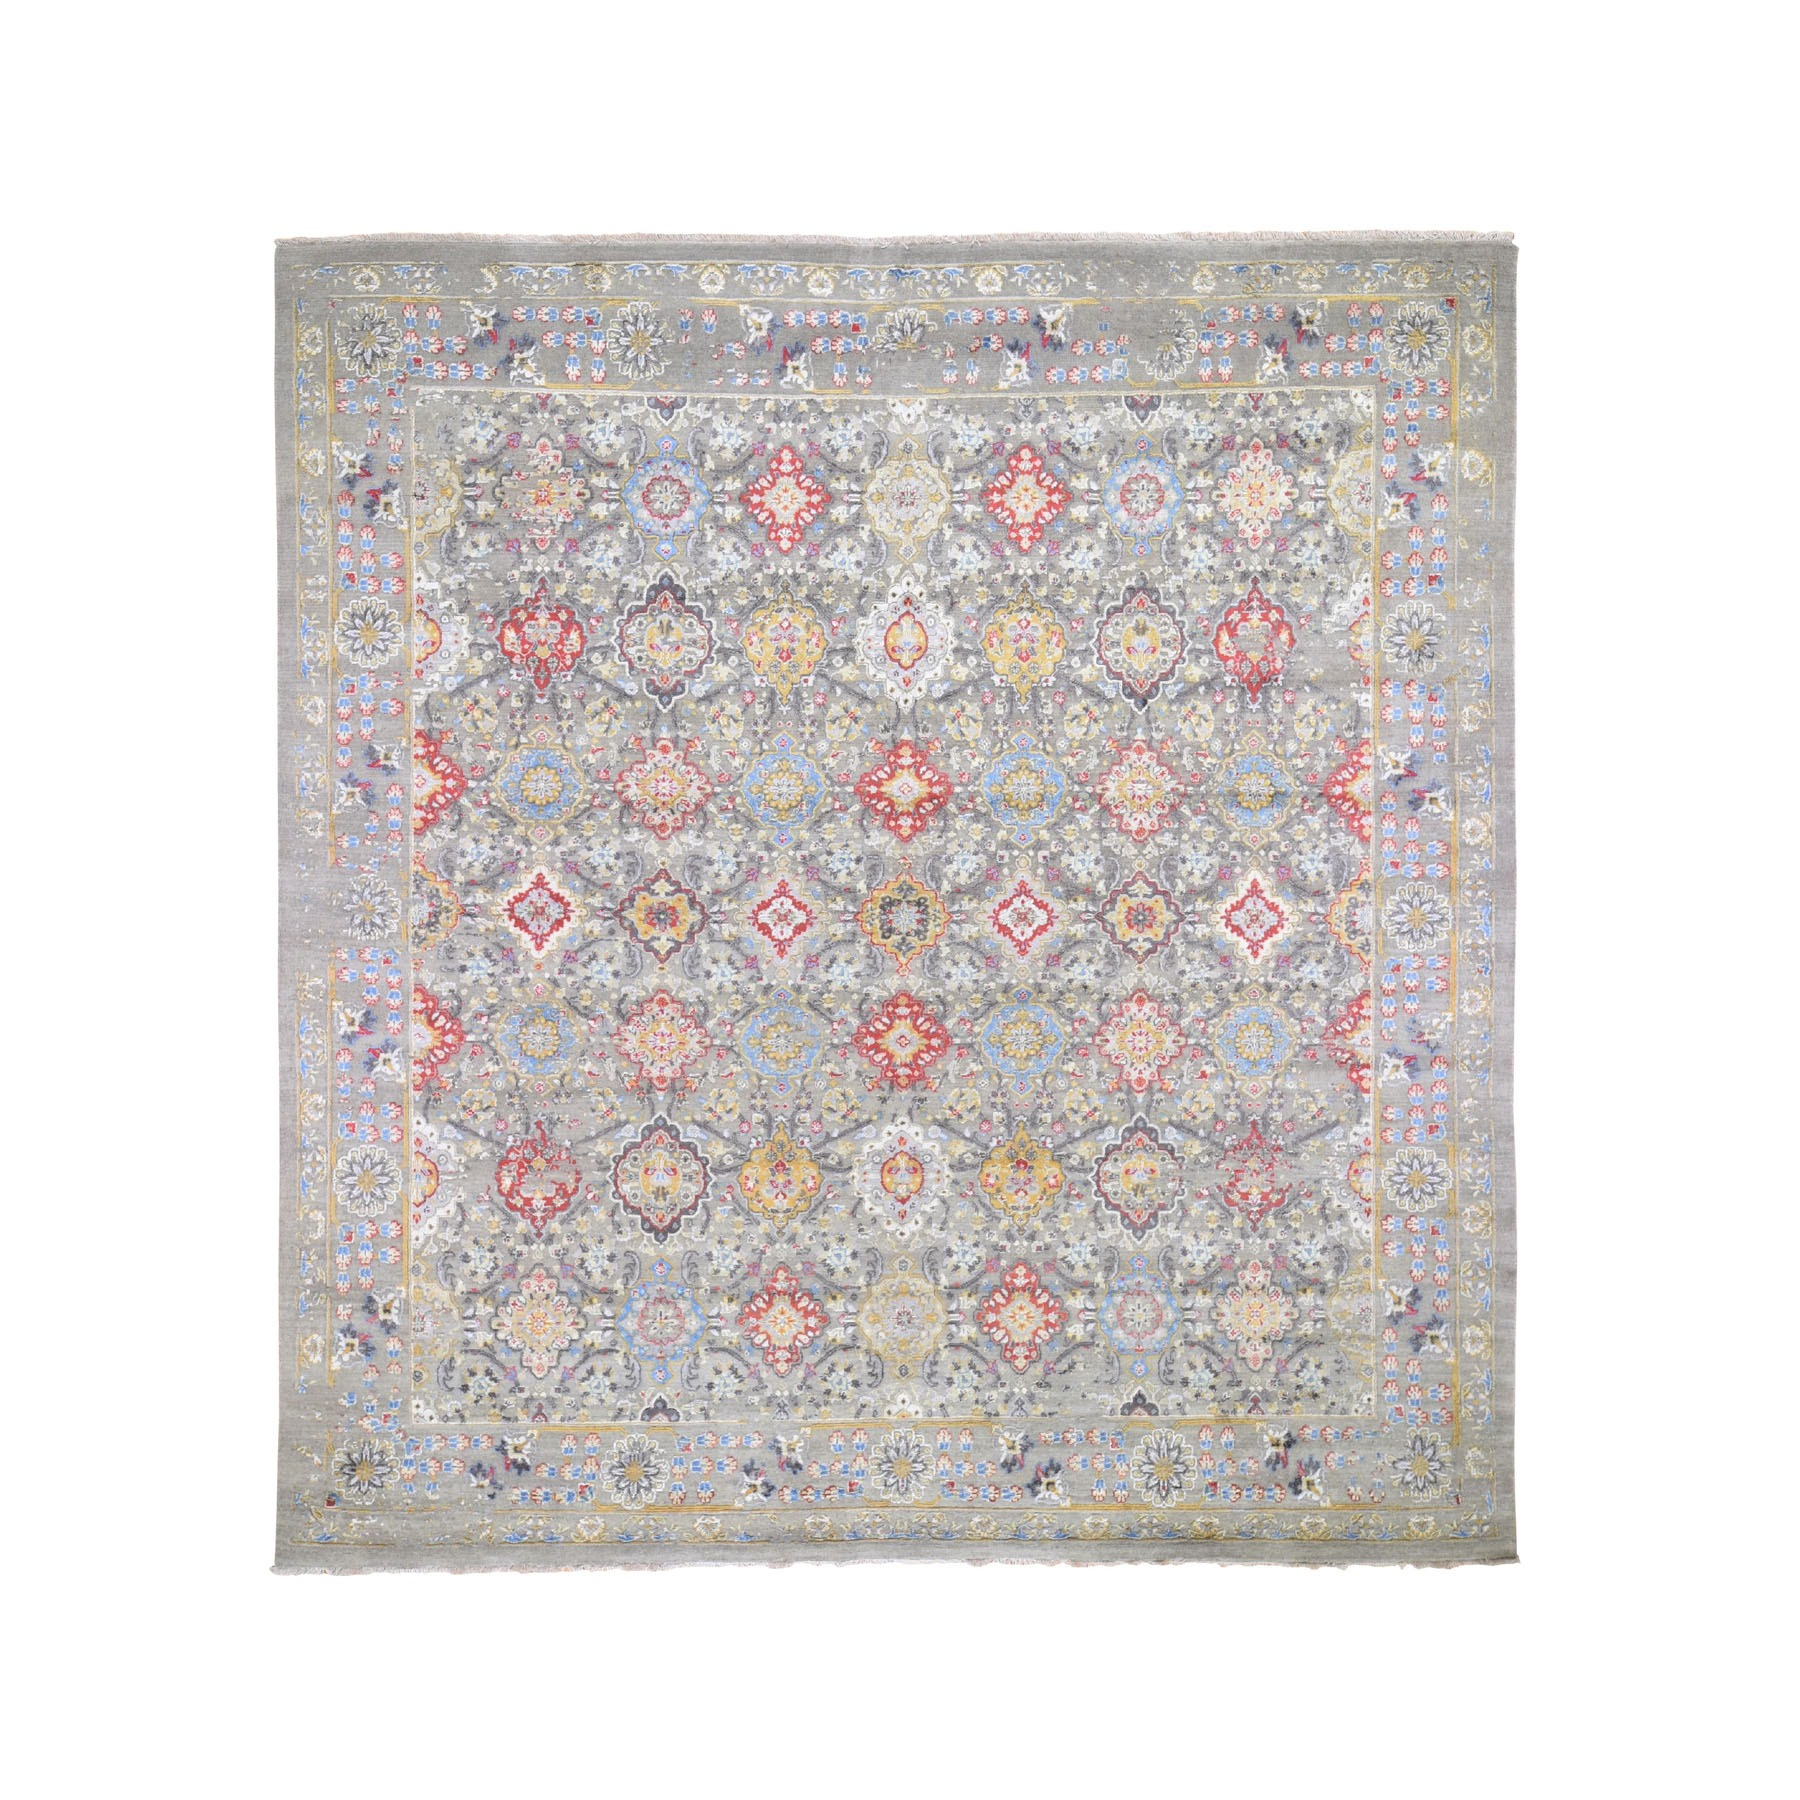 "10'3""x10'3"" Square THE SUNSET ROSETTES Wool And Pure Silk Hand Knotted Oriental Rug"